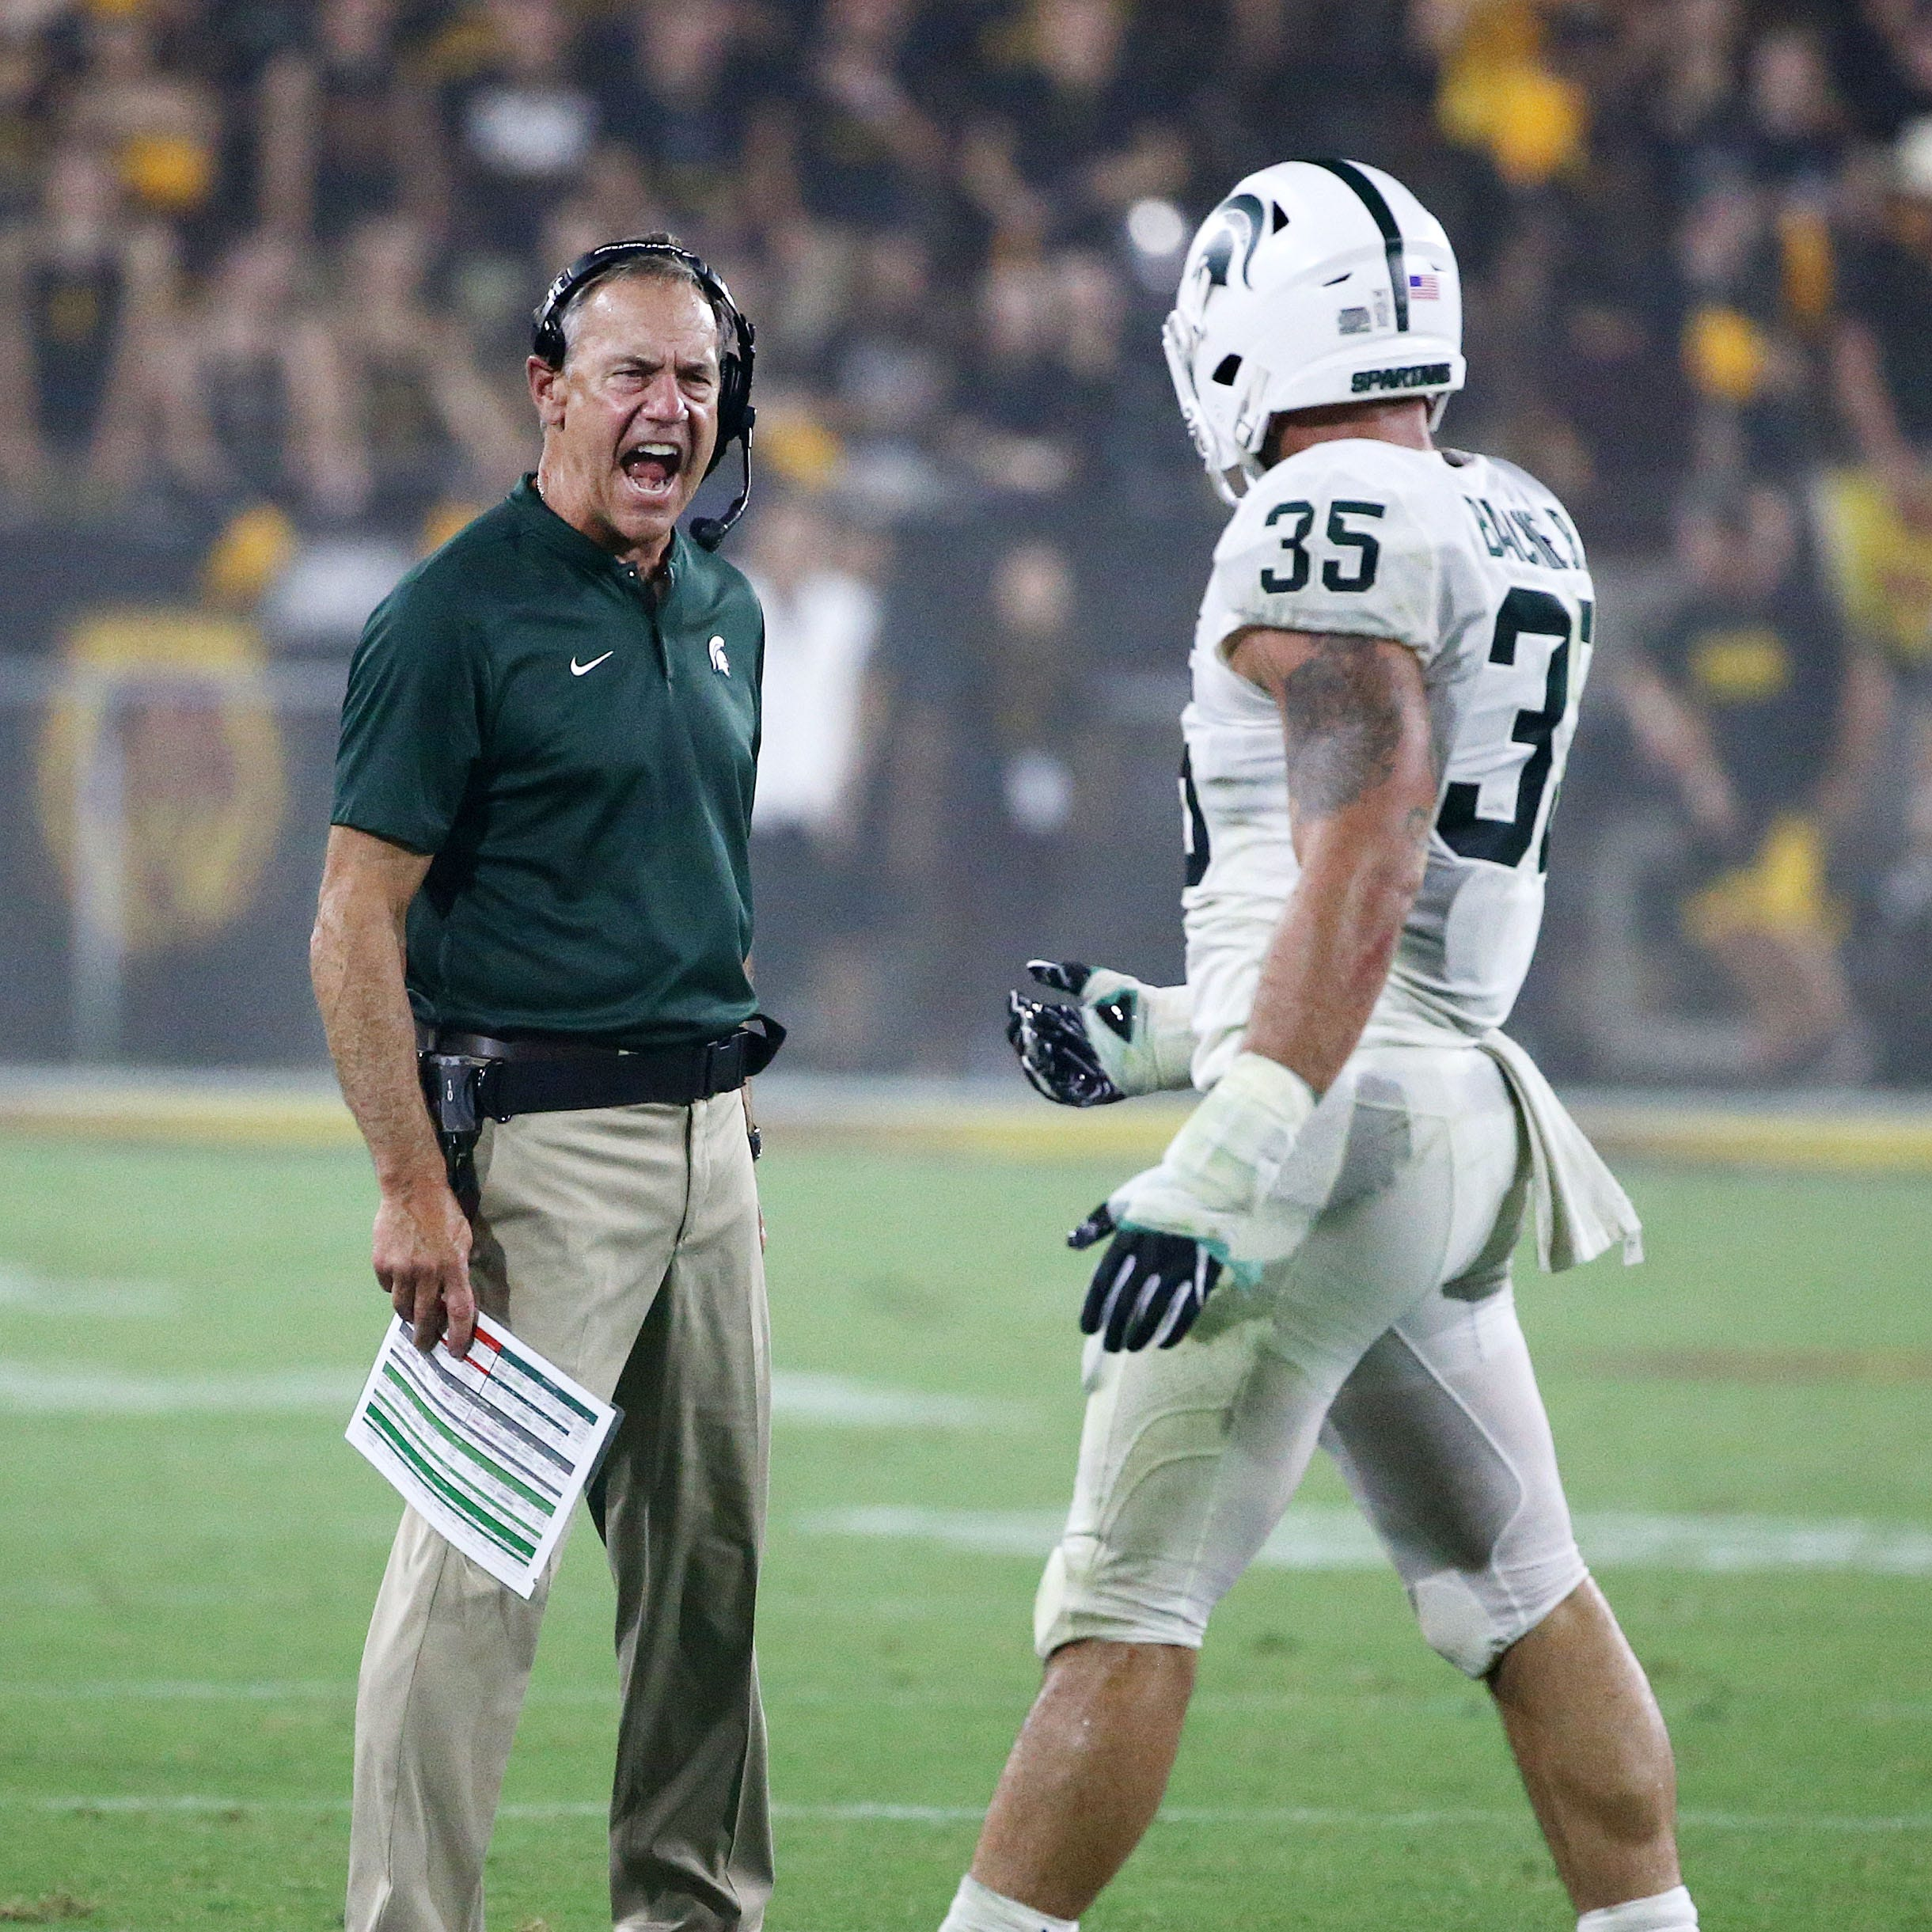 Couch: Six steps to positive thinking for the perturbed Michigan State football fan